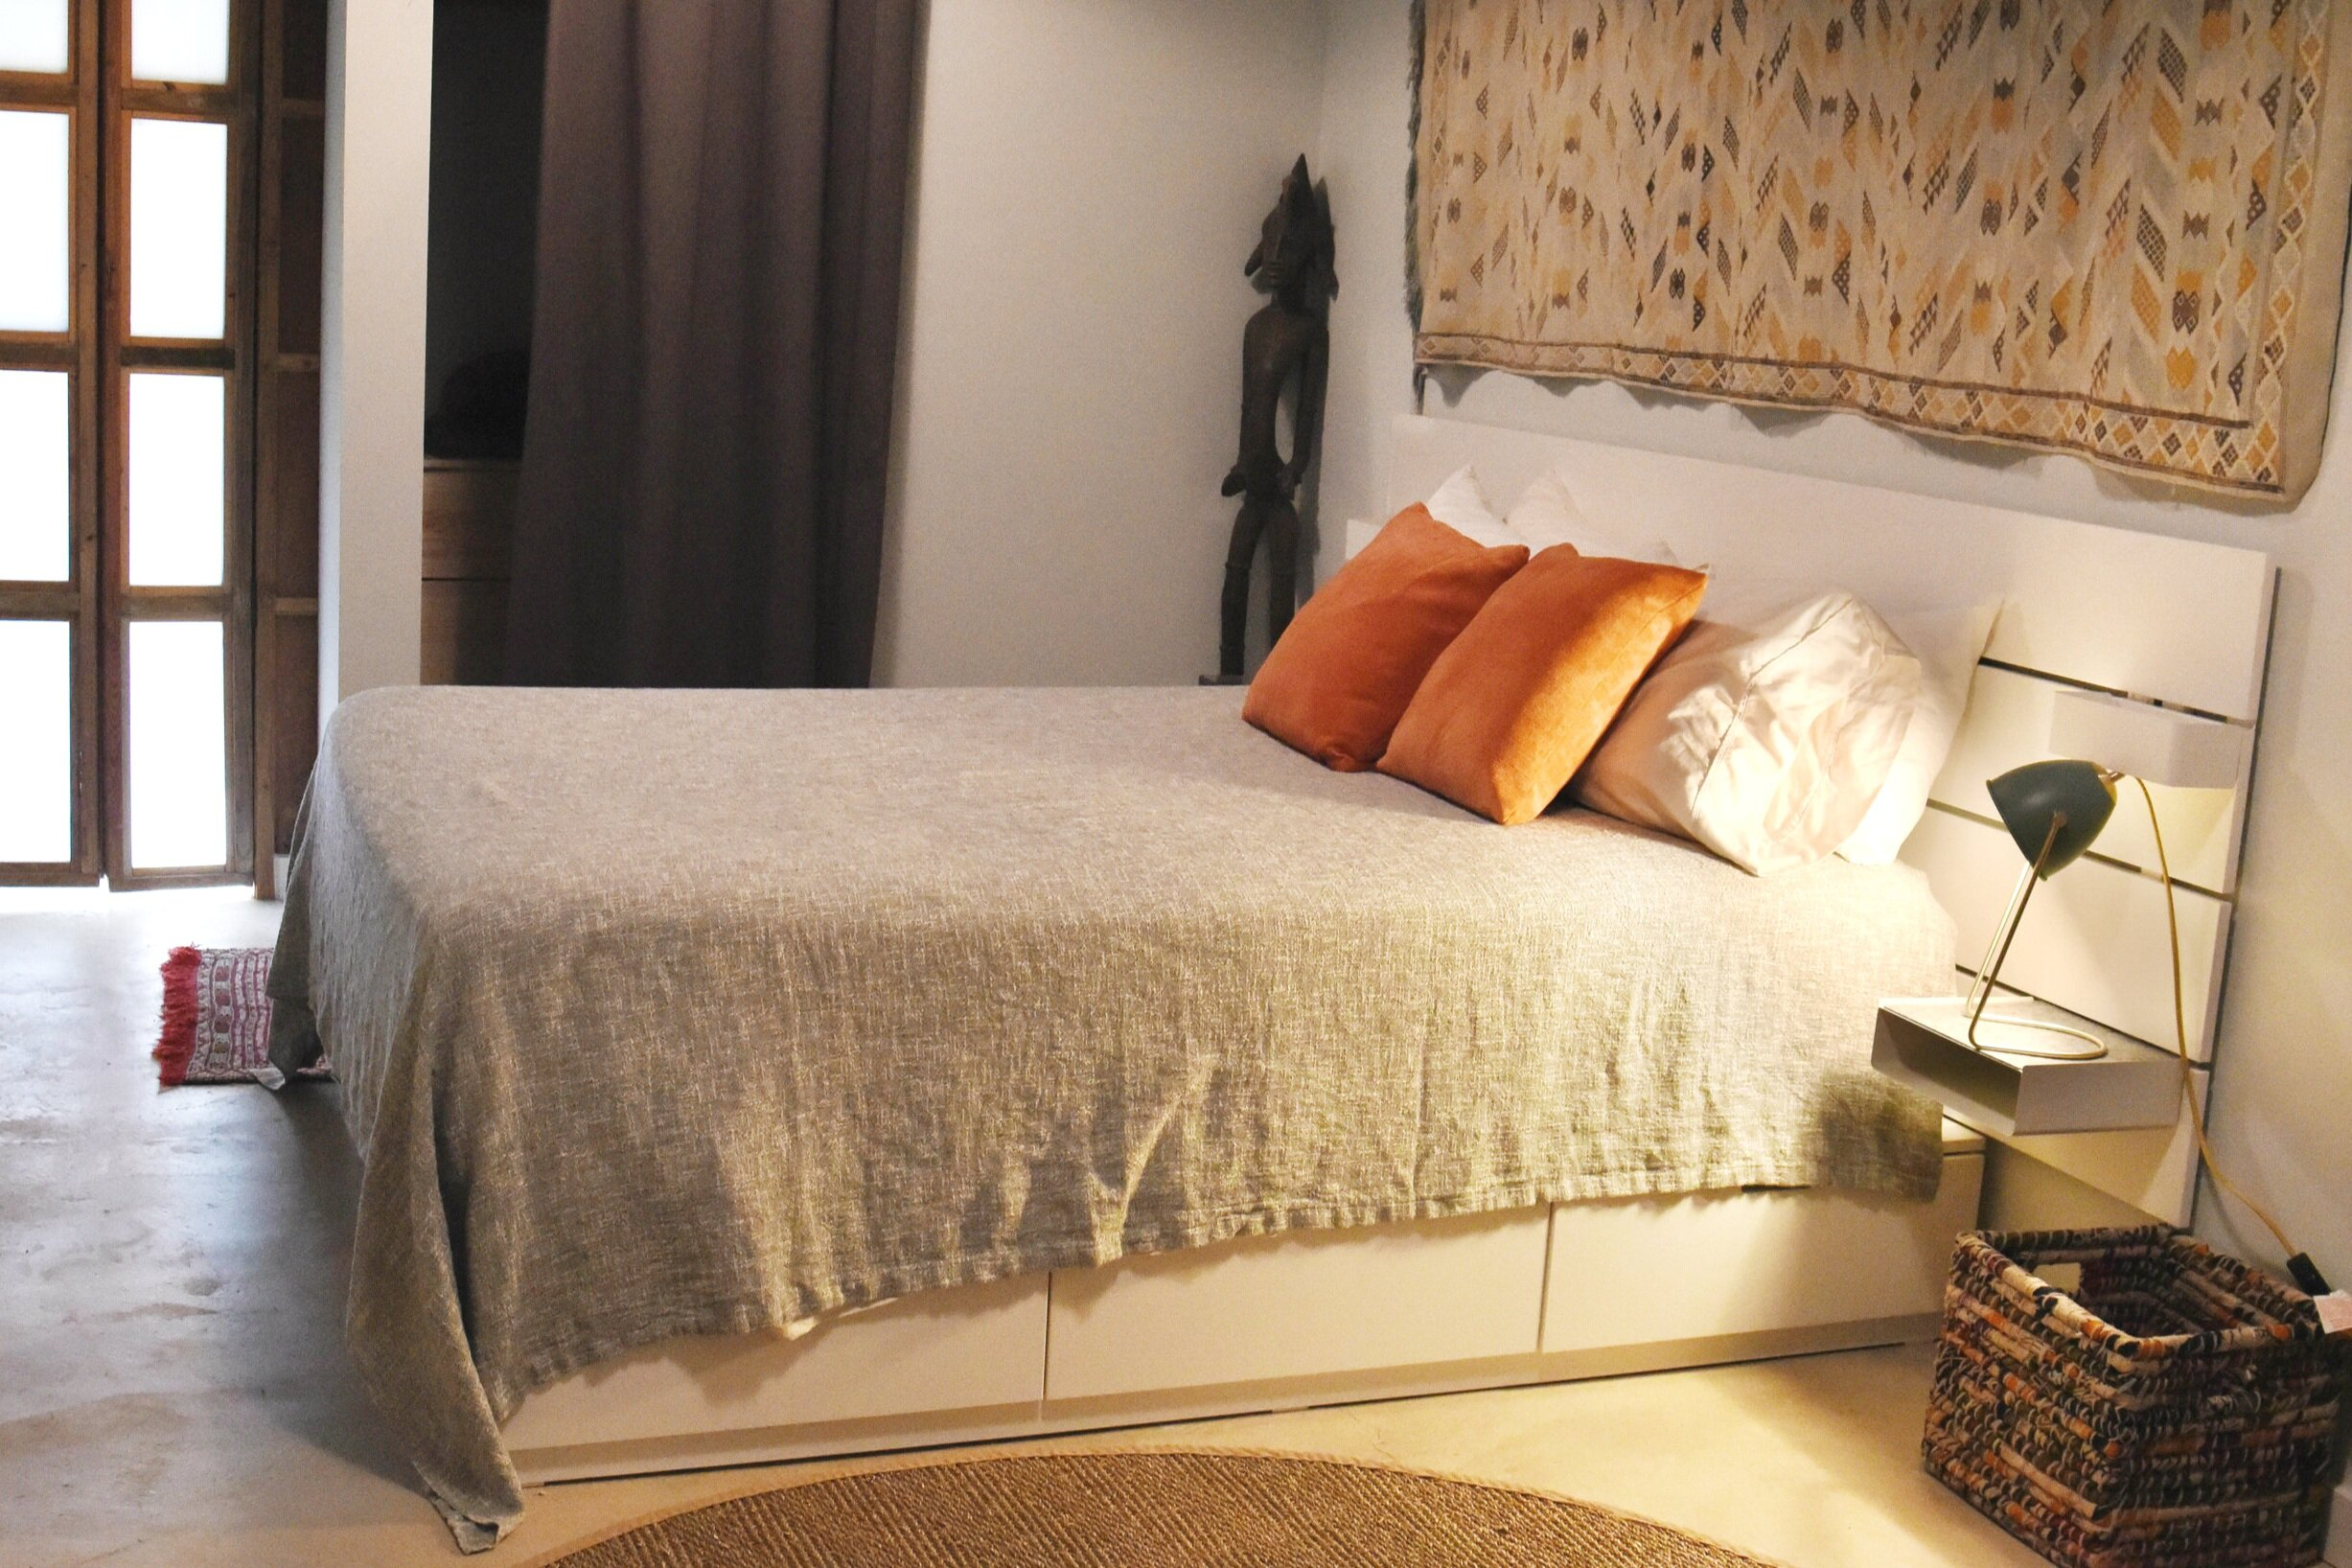 The Bodega House Damasco Room is a wonderful escape offering luxury and privacy.